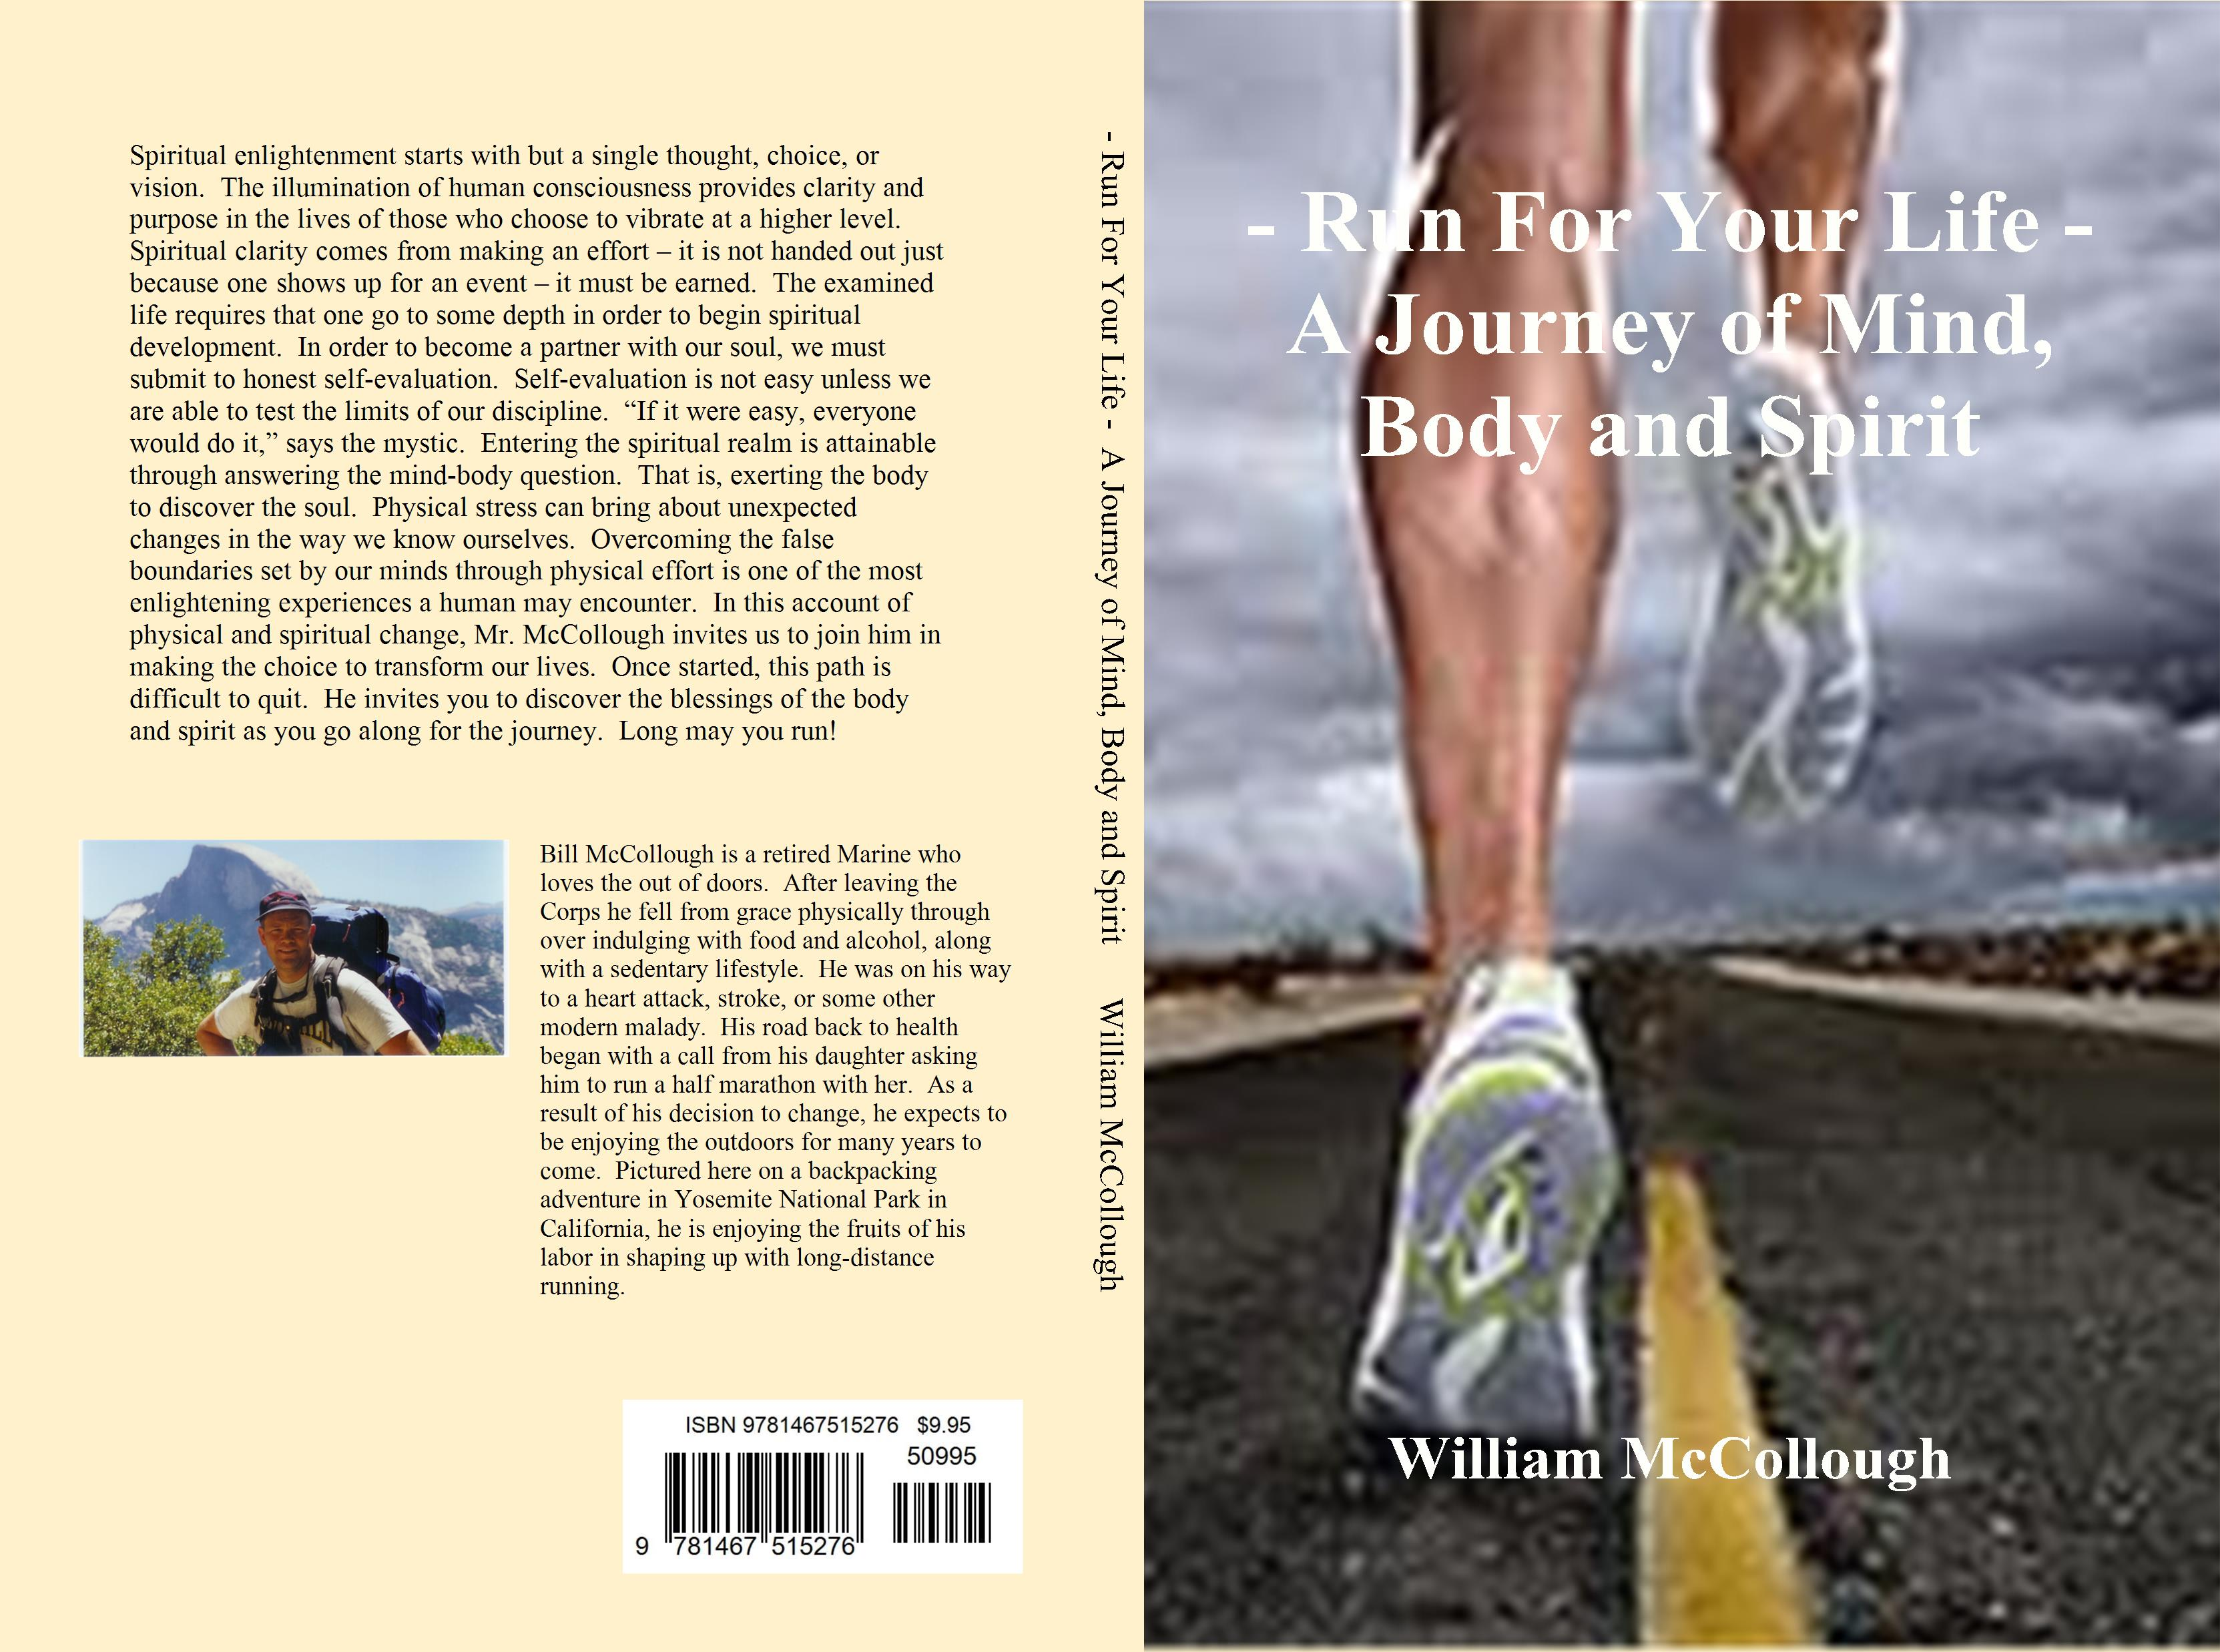 - Run For Your Life - A Journey of Mind, Body and Spirit cover image